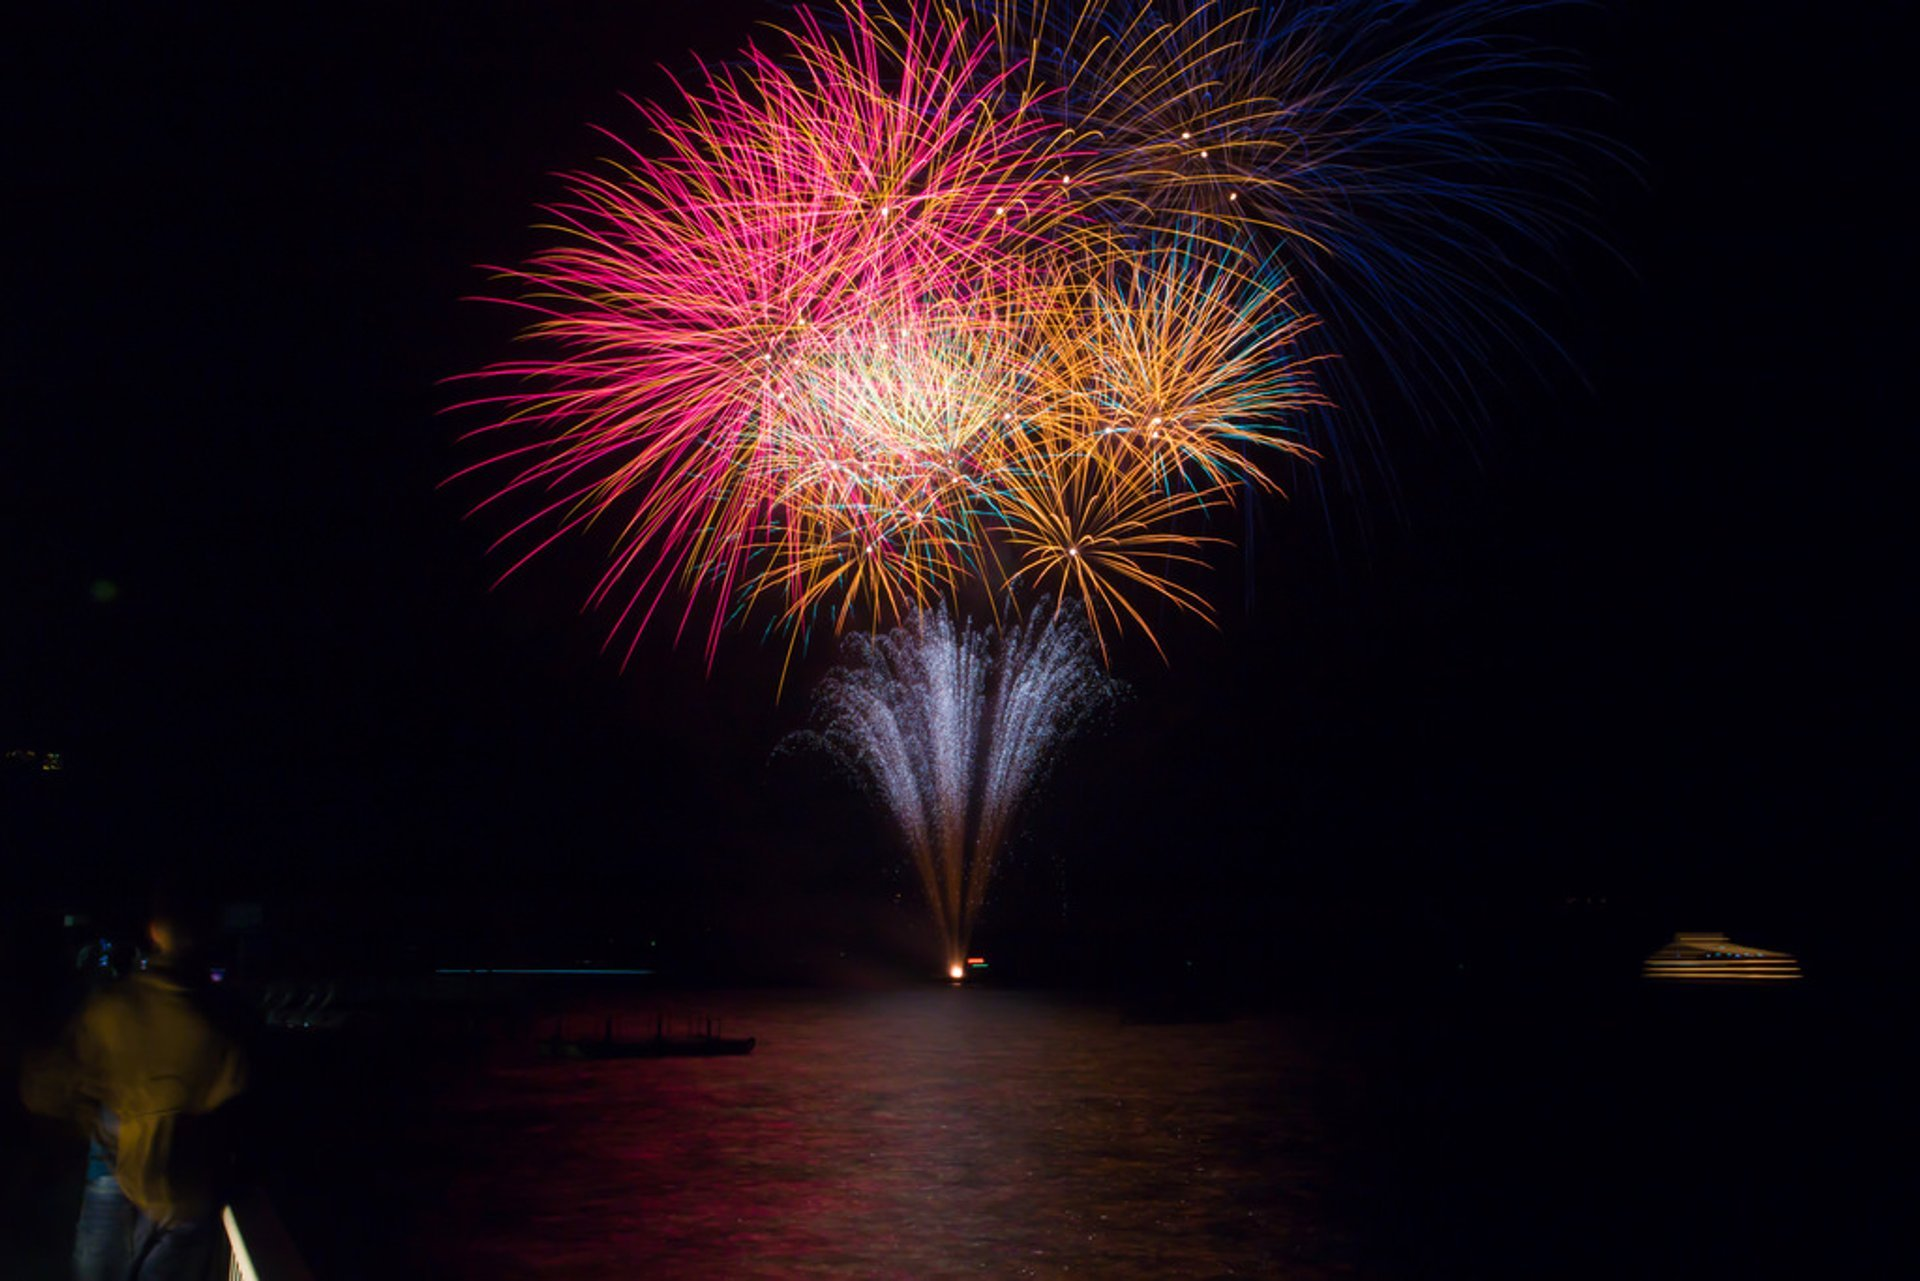 Fireworks on Lake Toyako in Japan - Best Season 2020